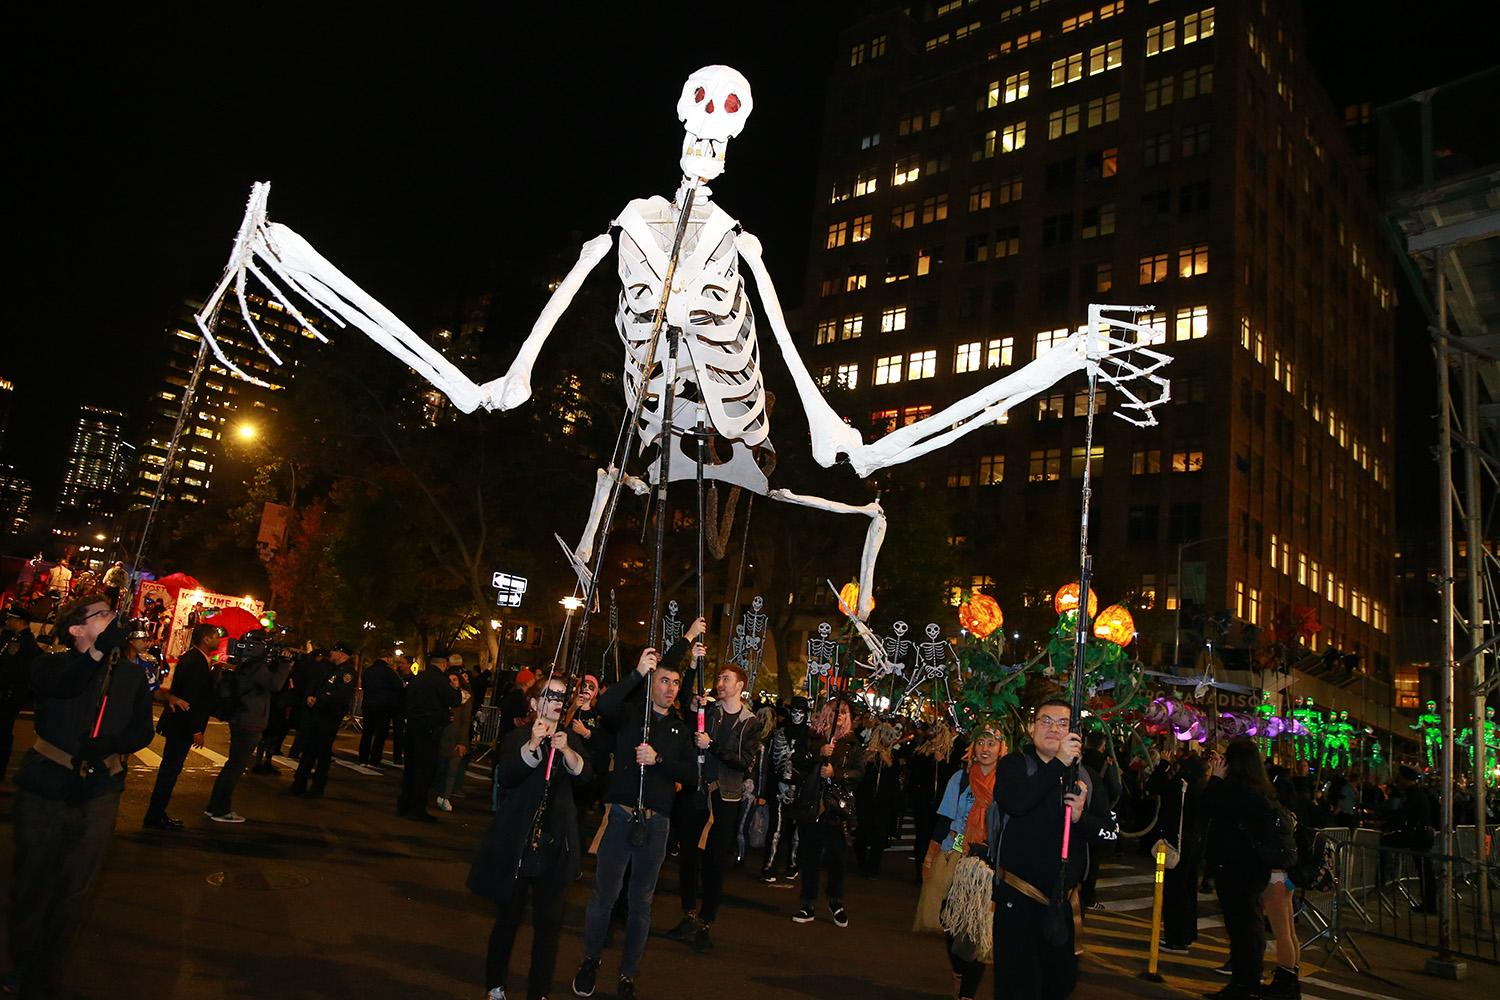 <p>Revelers march and carry goblins during the Greenwich Village Halloween Parade in New York, Oct. 31, 2018. (Gordon Donovan/Yahoo News) </p>